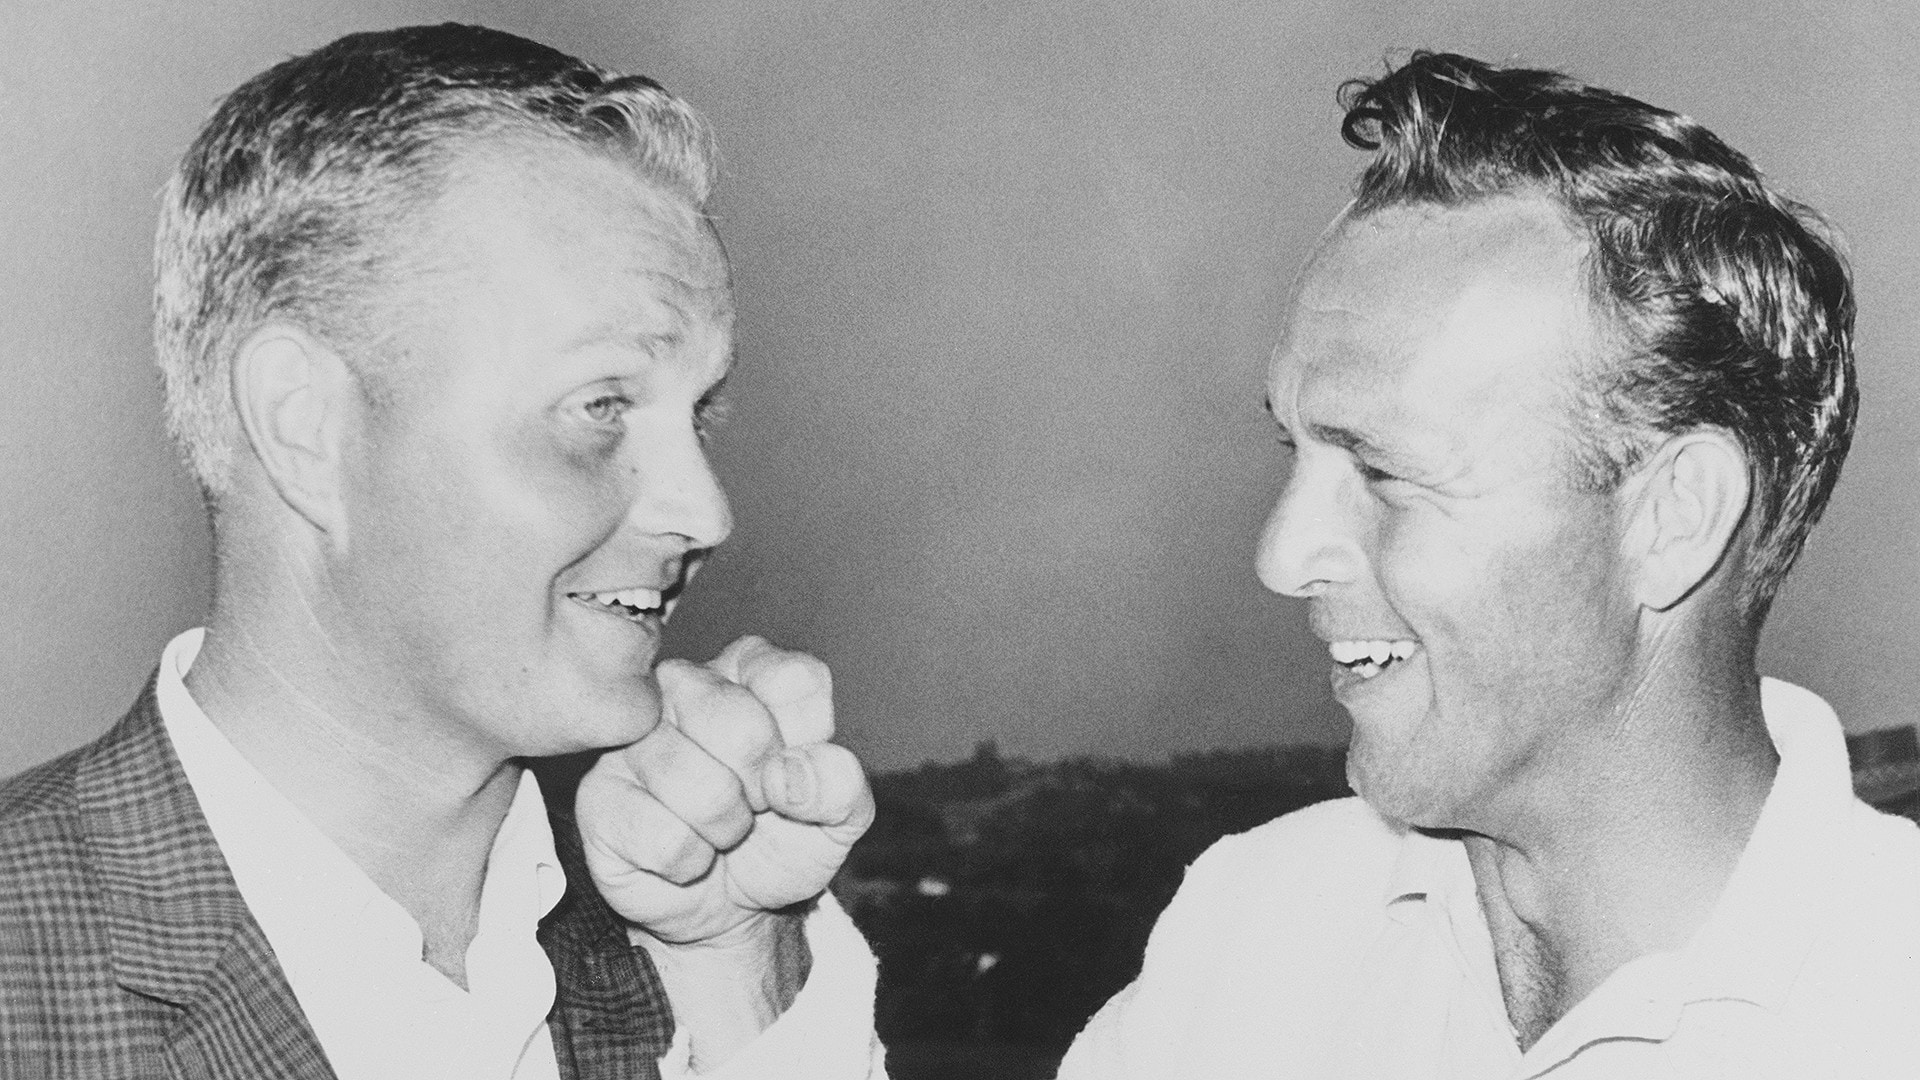 Jack Nicklaus, Arnold Palmer at 1962 U.S. Open